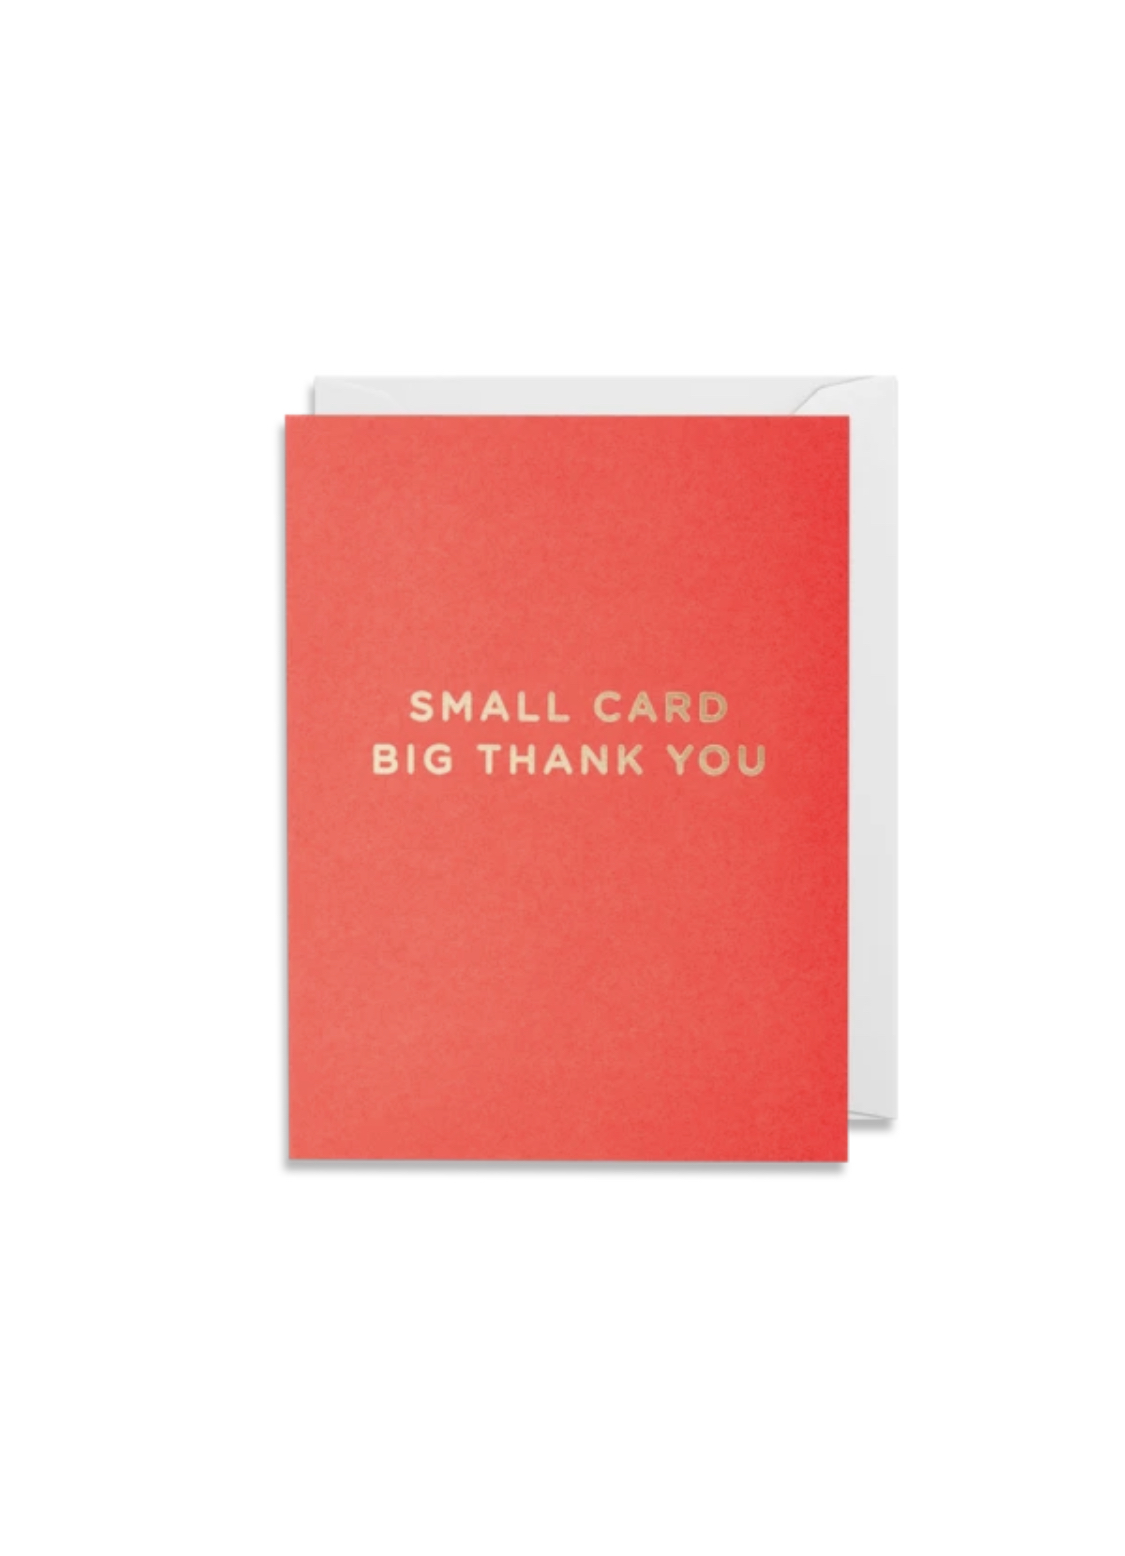 Card Thank You Lagom Mini Card -Small Card Big Thank you Red 4150